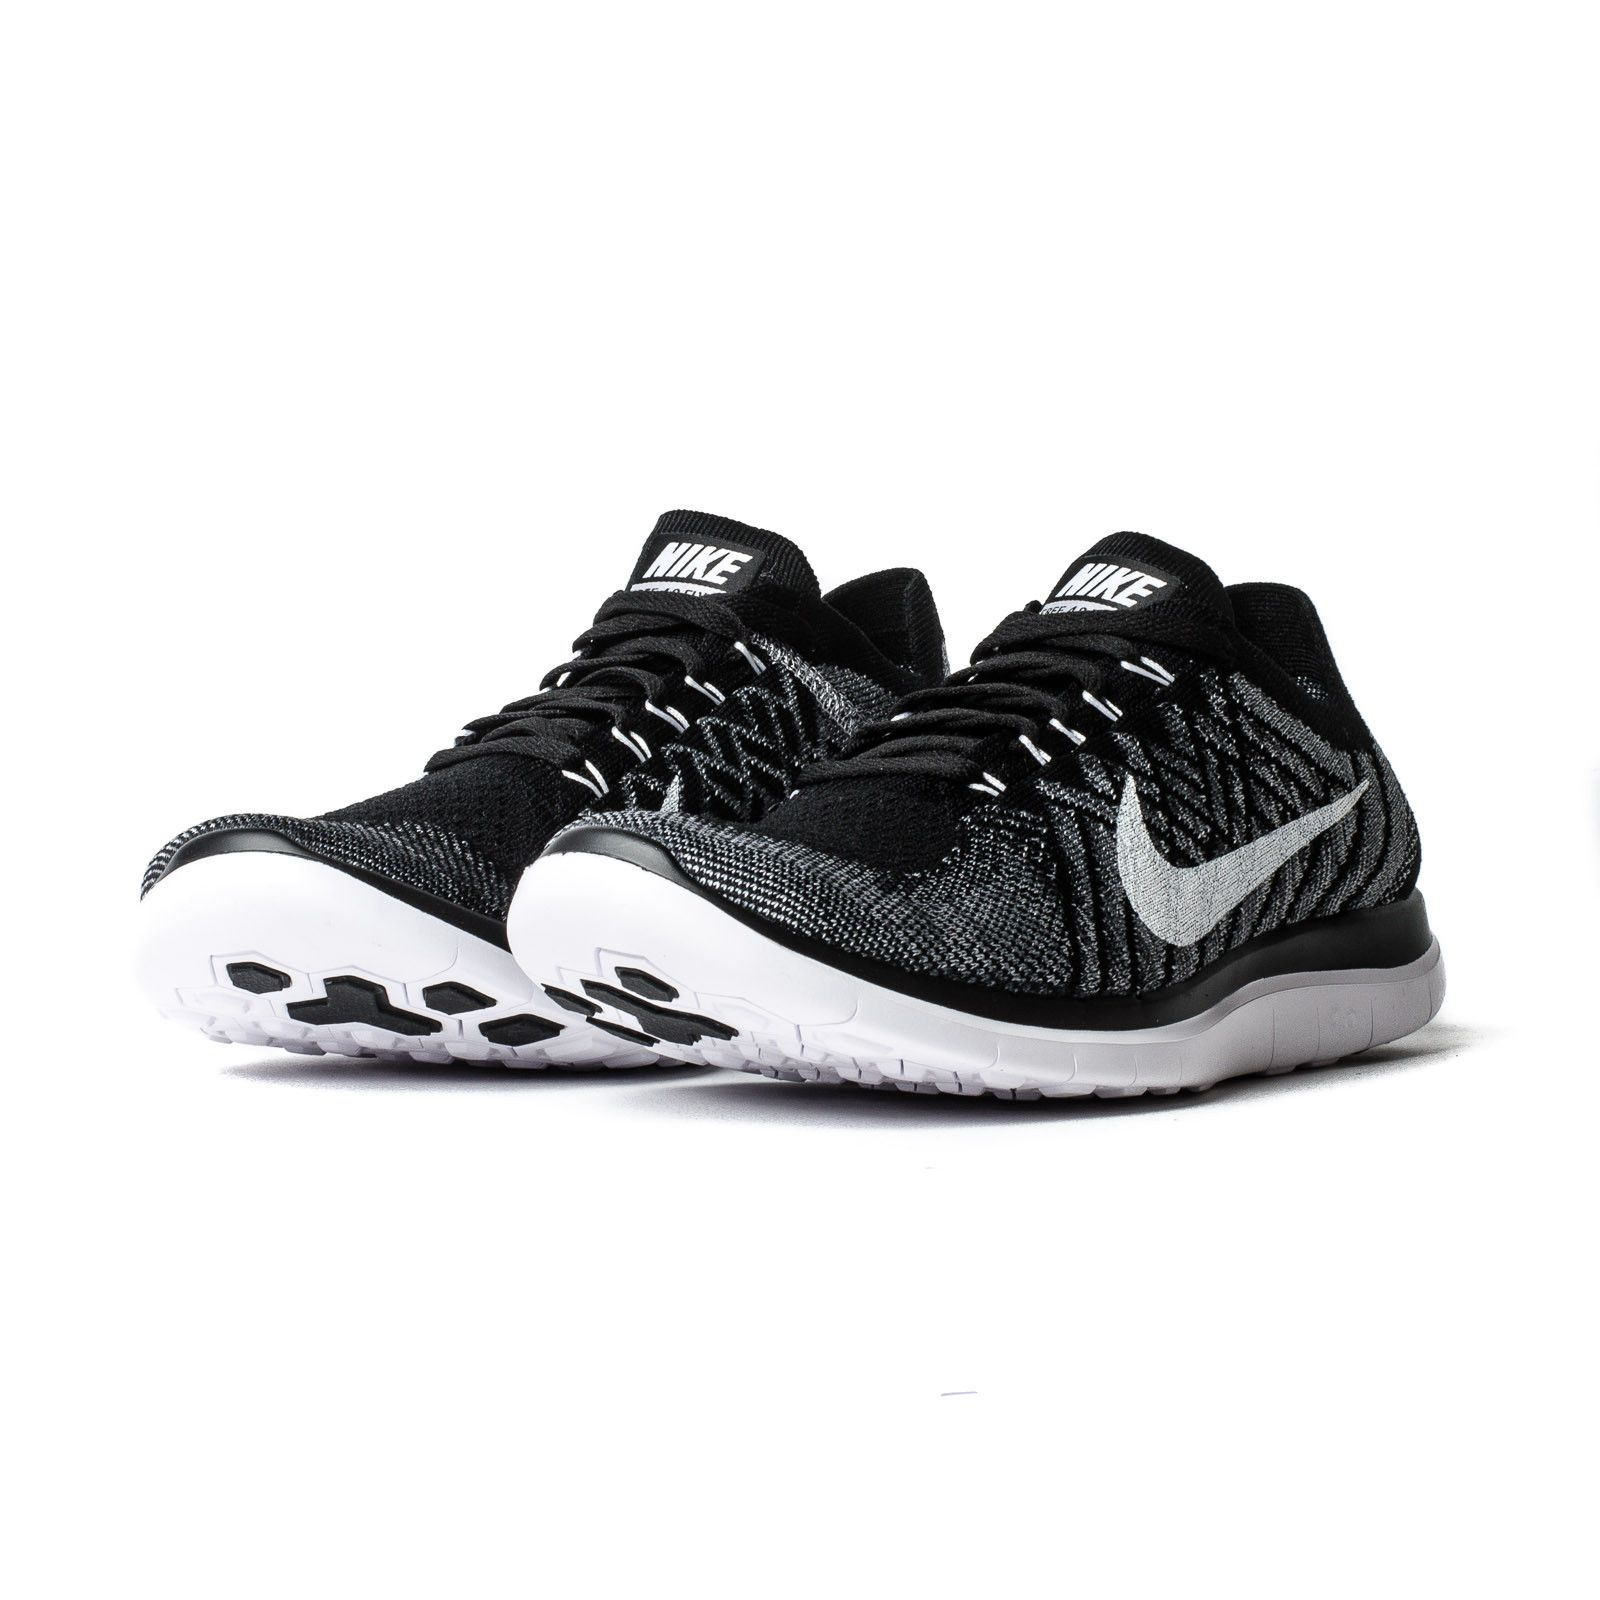 nike free 4.0 flyknit damen ideal optics